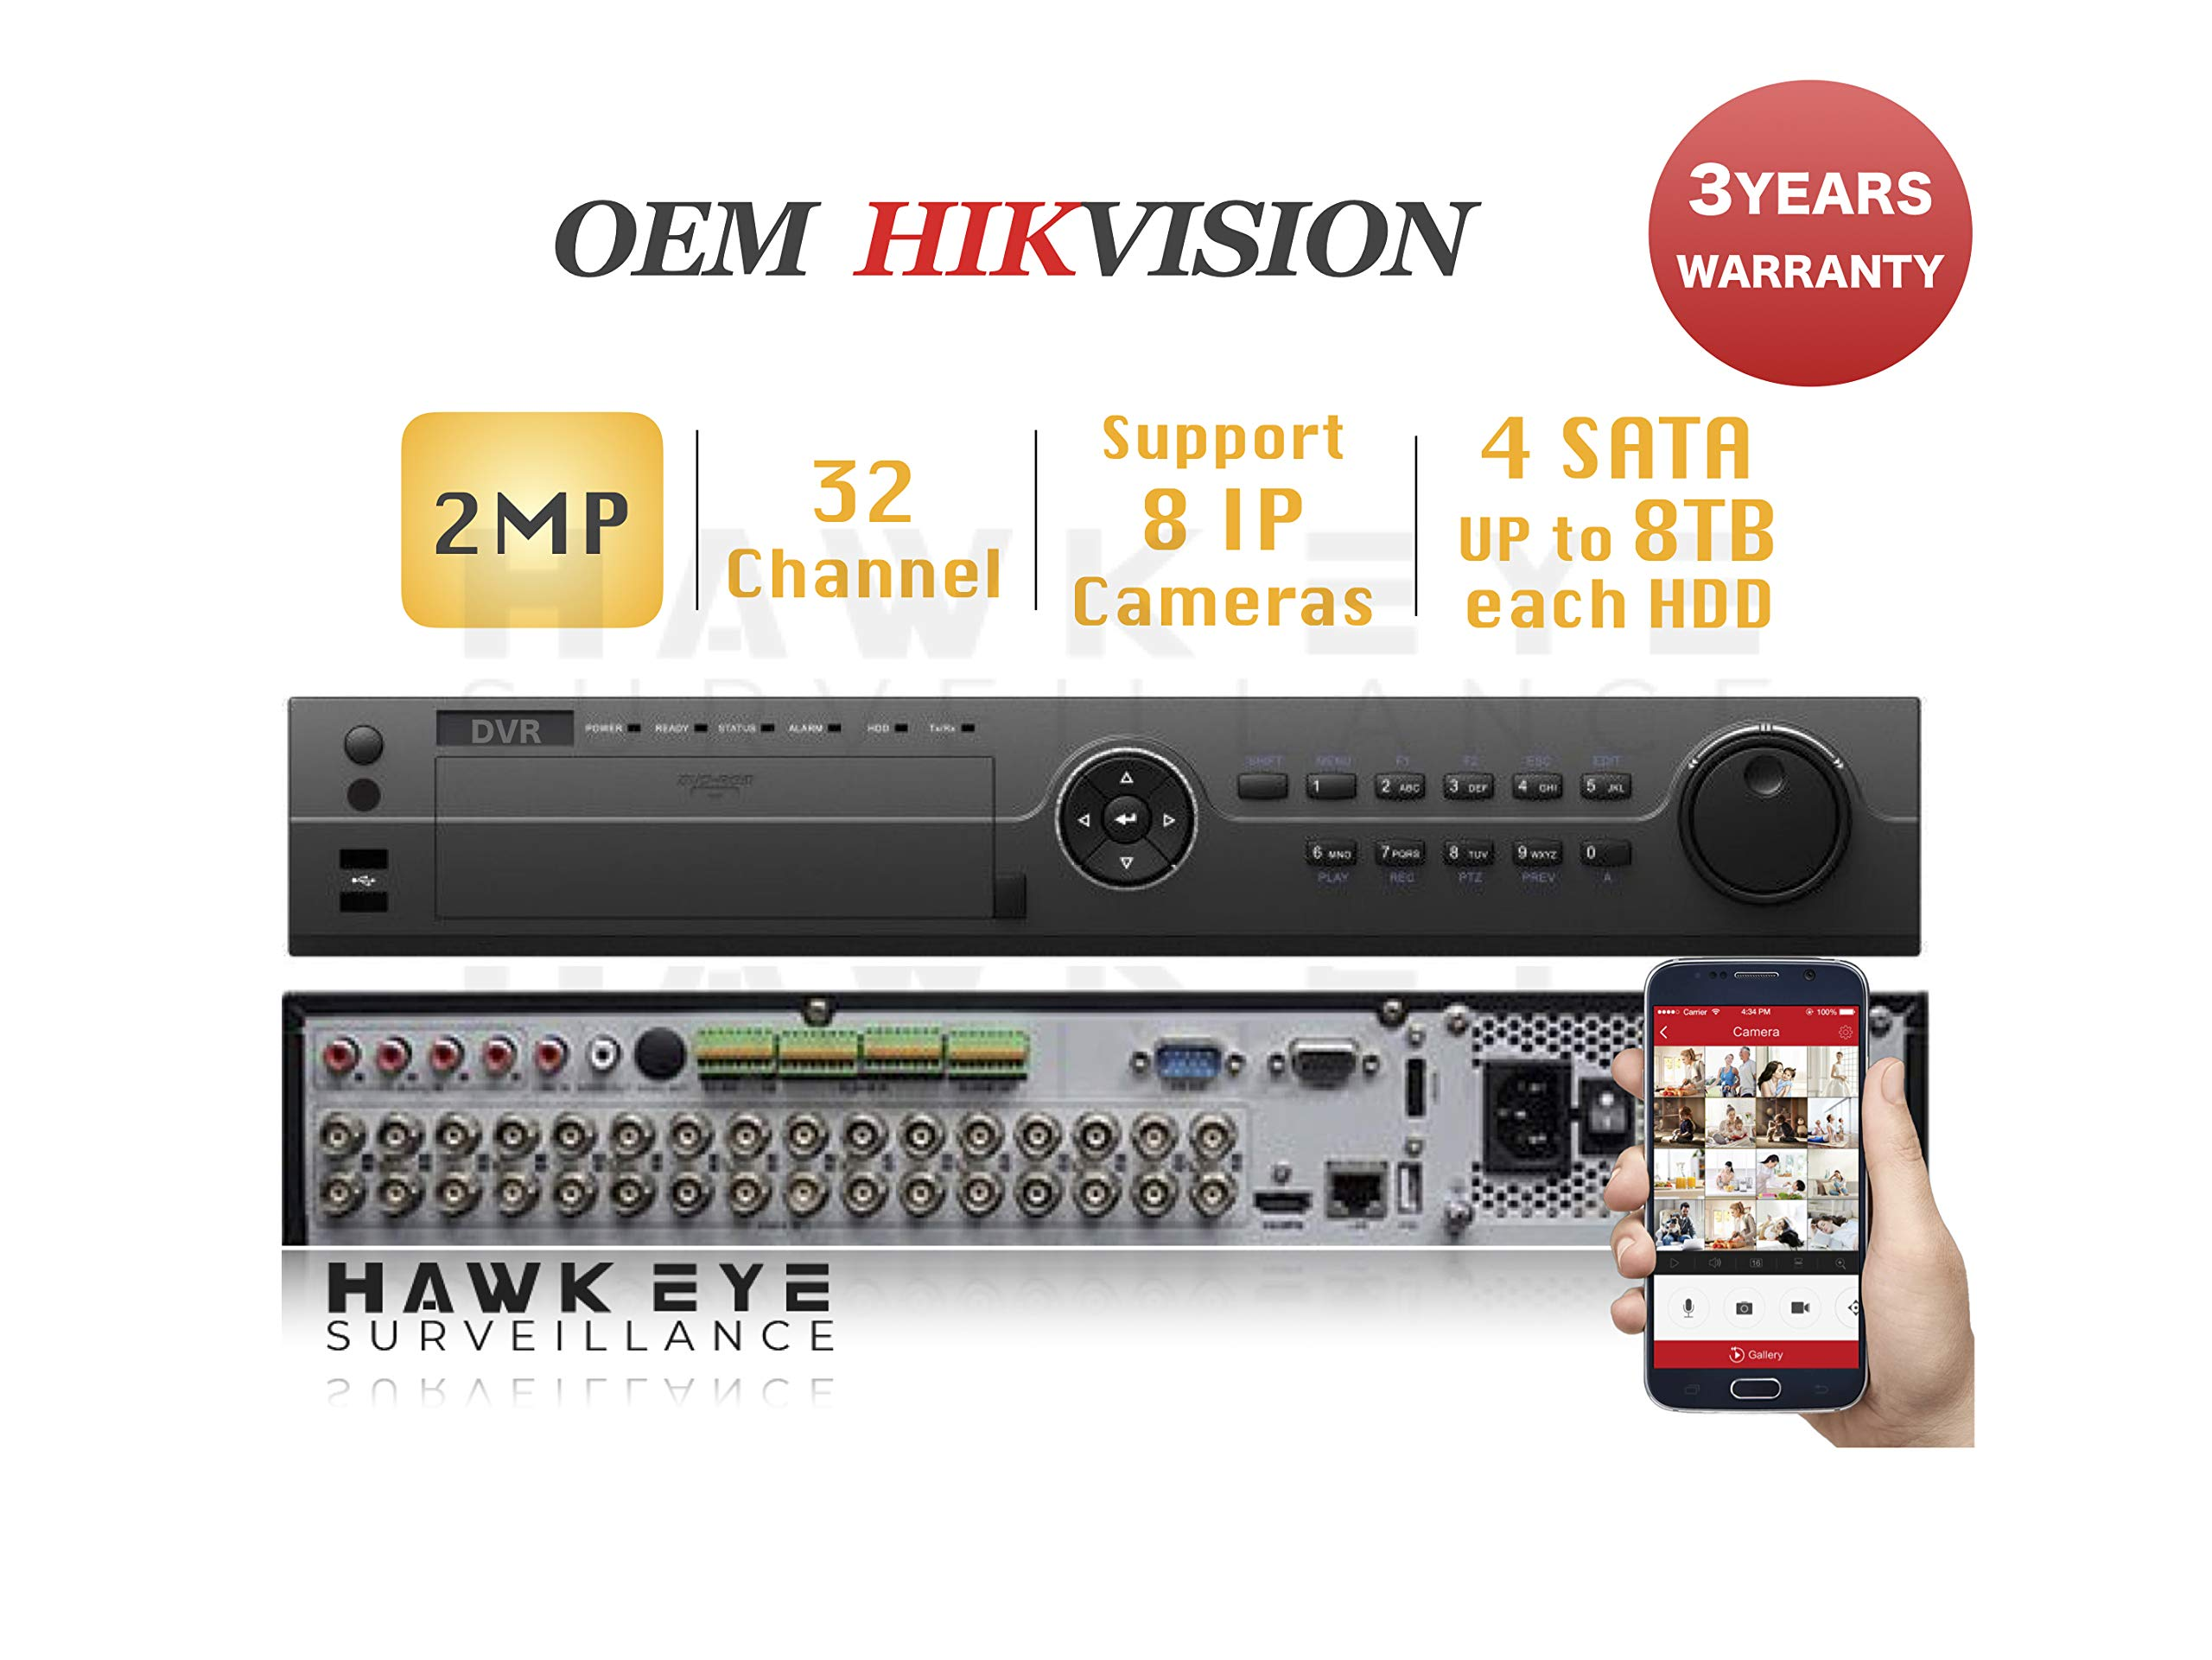 32CH HD TVI 1080P DVR - Surveillance Digital Video Recorder 32CH HD-TVI/CVI/AHD H264 Full-HD HDMI/VGA/BNC Video Output for Home & Business Analog& IP Camera Support Mobile App 3year Warranty